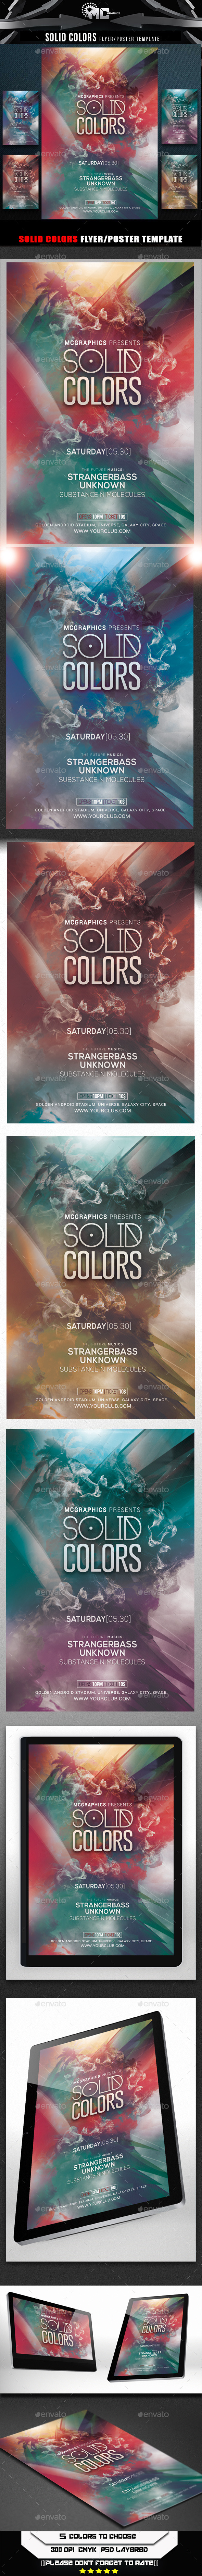 GraphicRiver Solid Colors Flyer Template 9956401